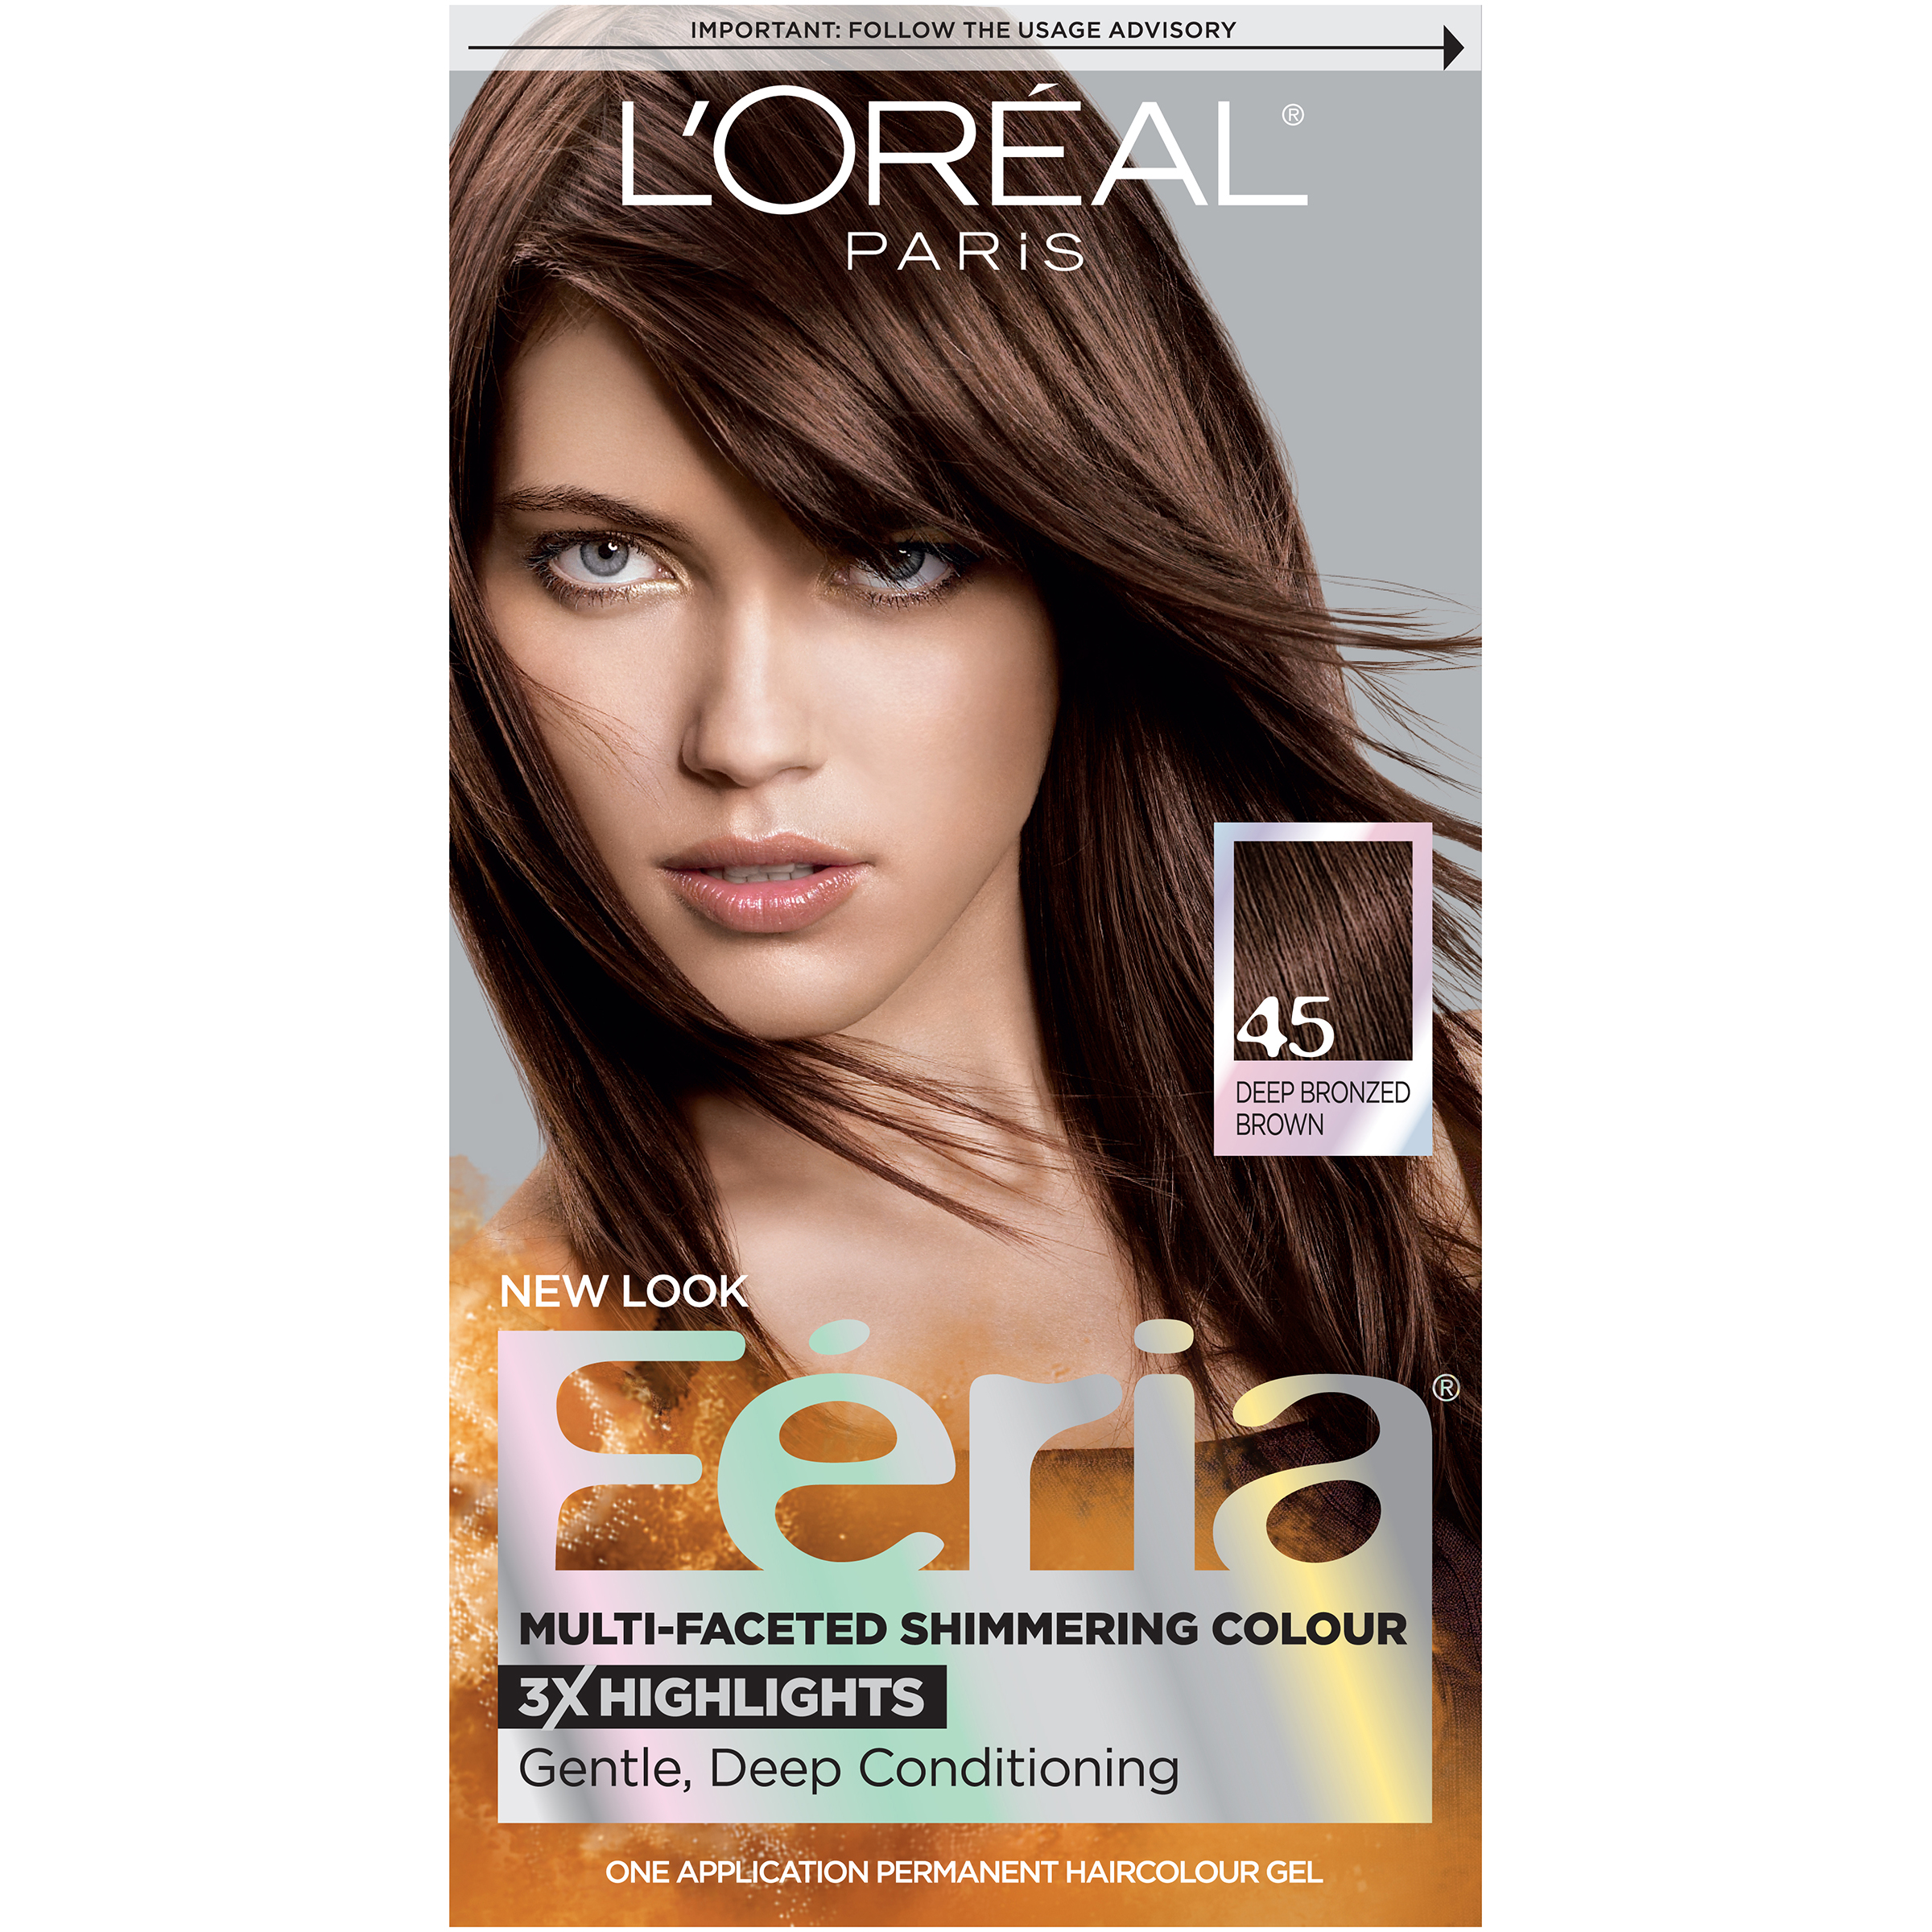 Loreal Feria Permanent Haircolor Gel 45 Deep Bronzed Brown Ebay